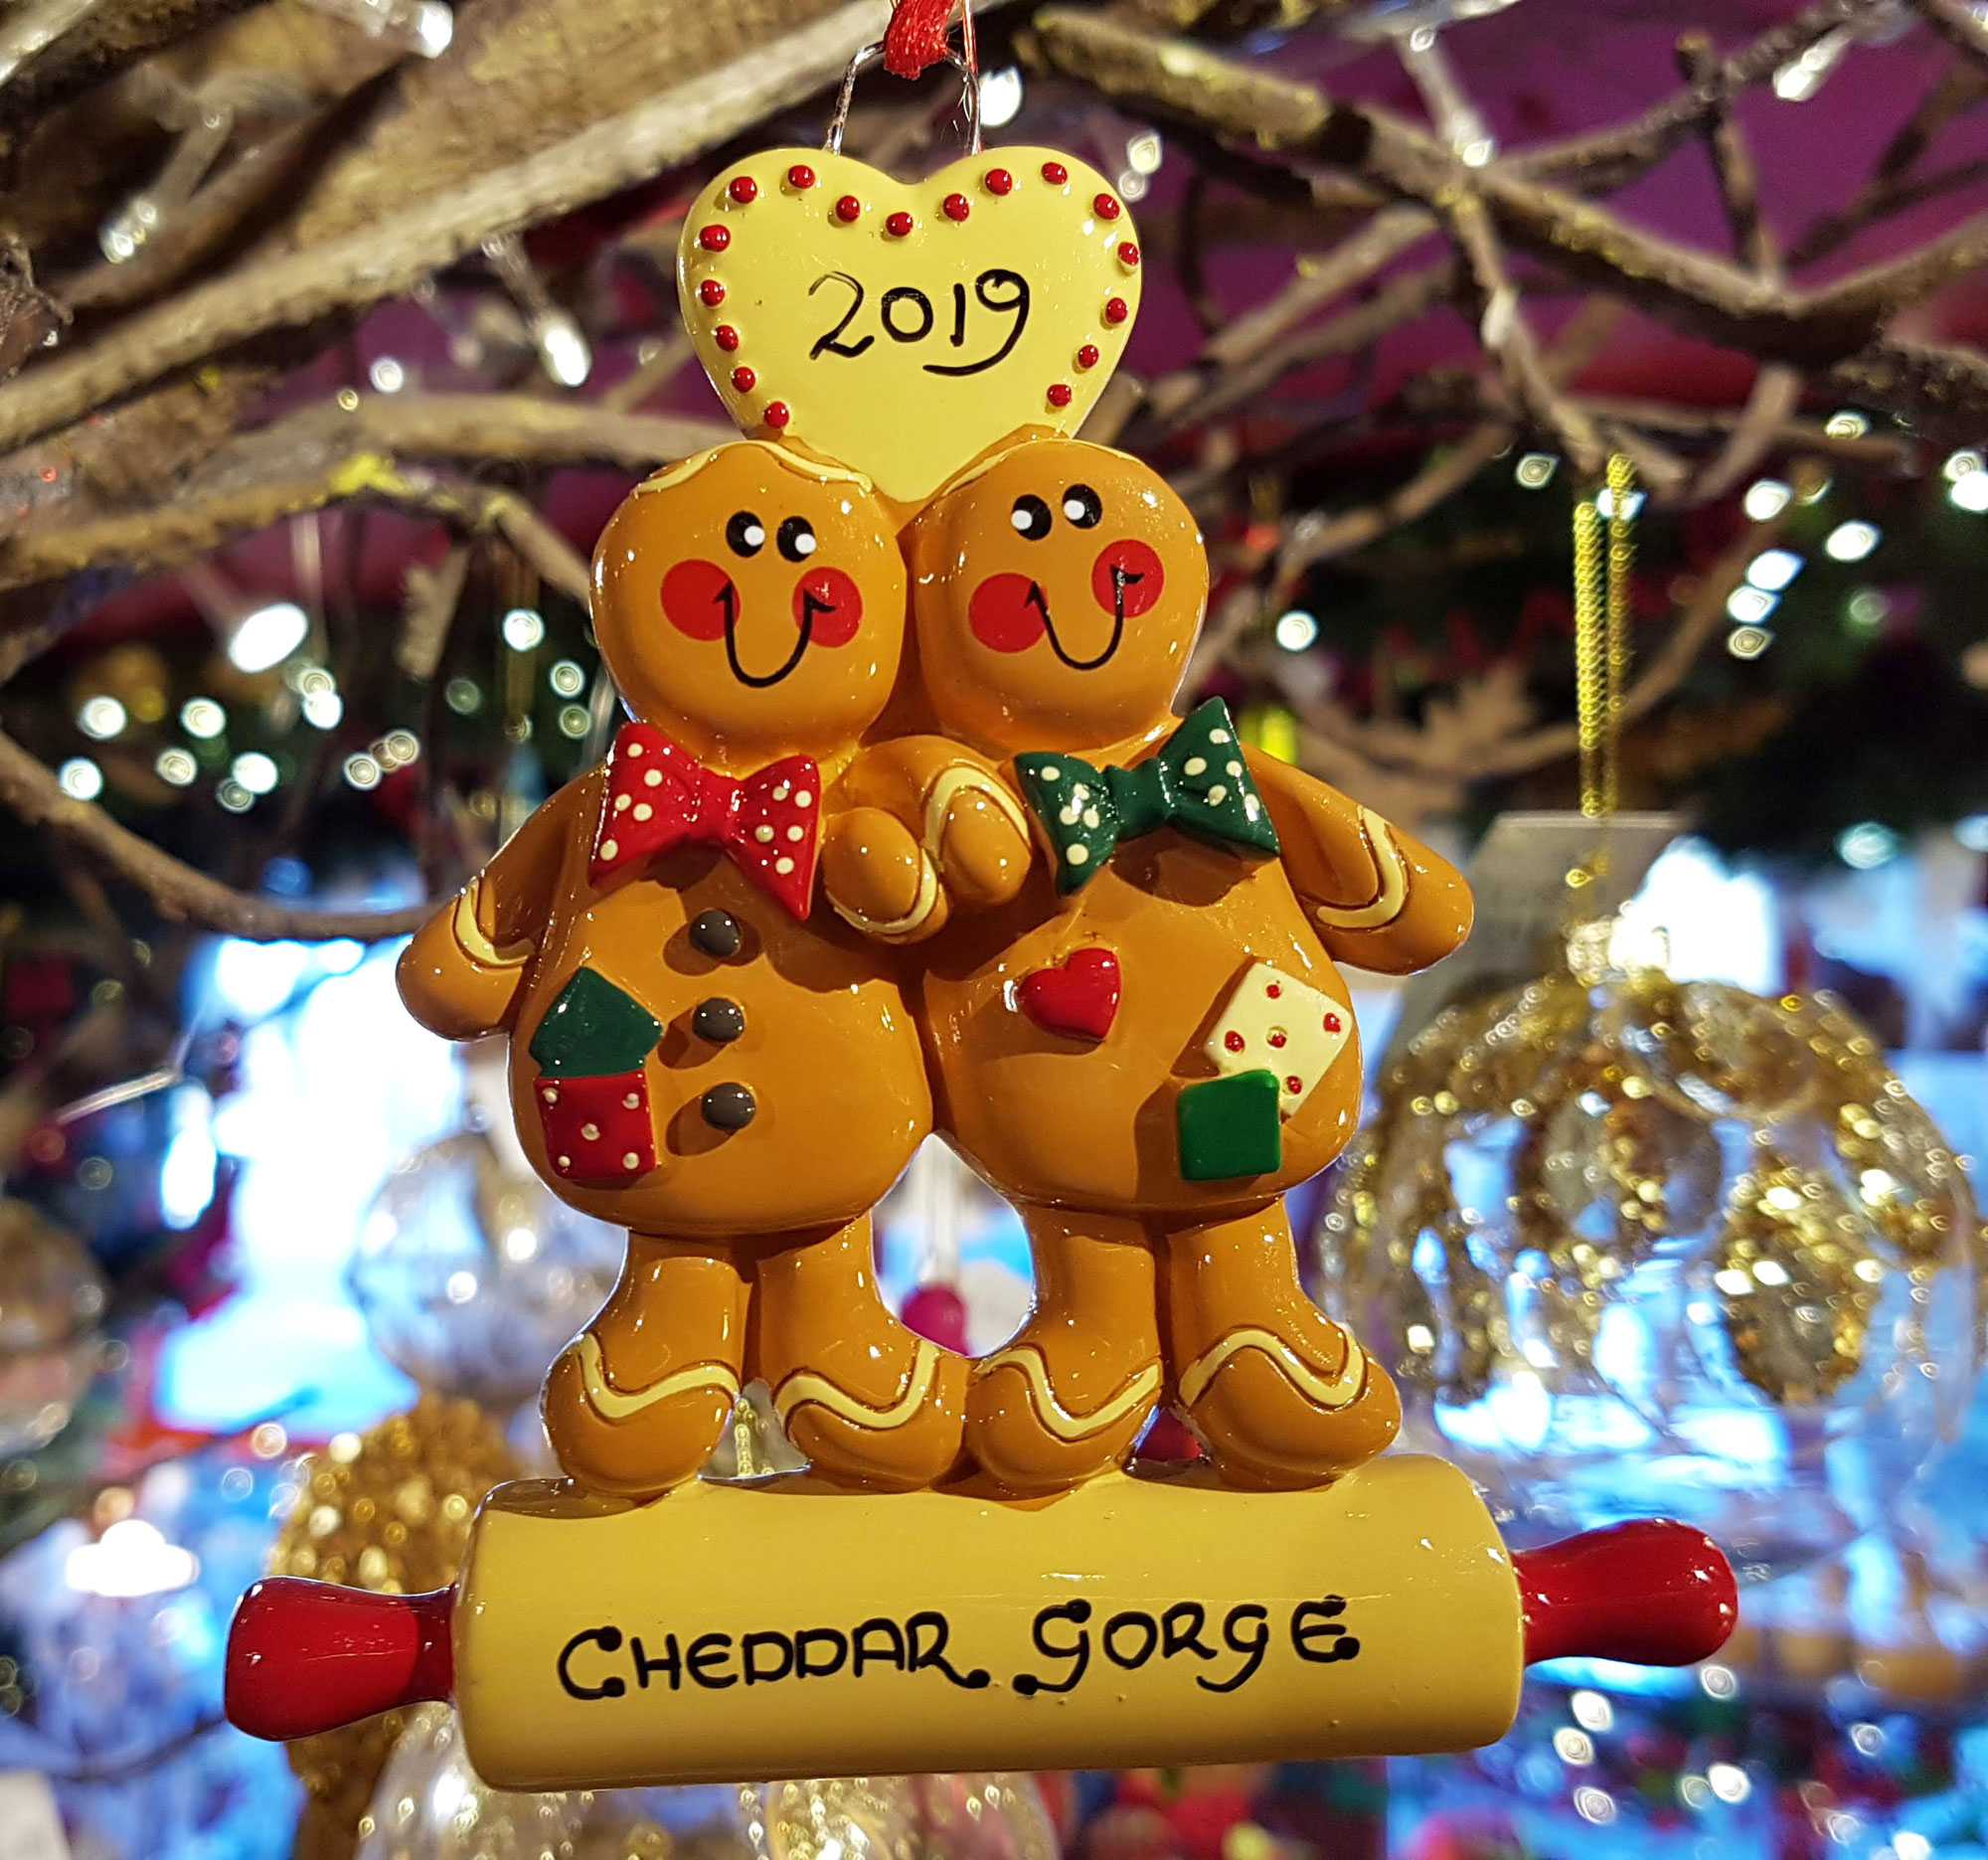 Cheddar Gorge Gingerbread Couple 2019 Hanging Decoration